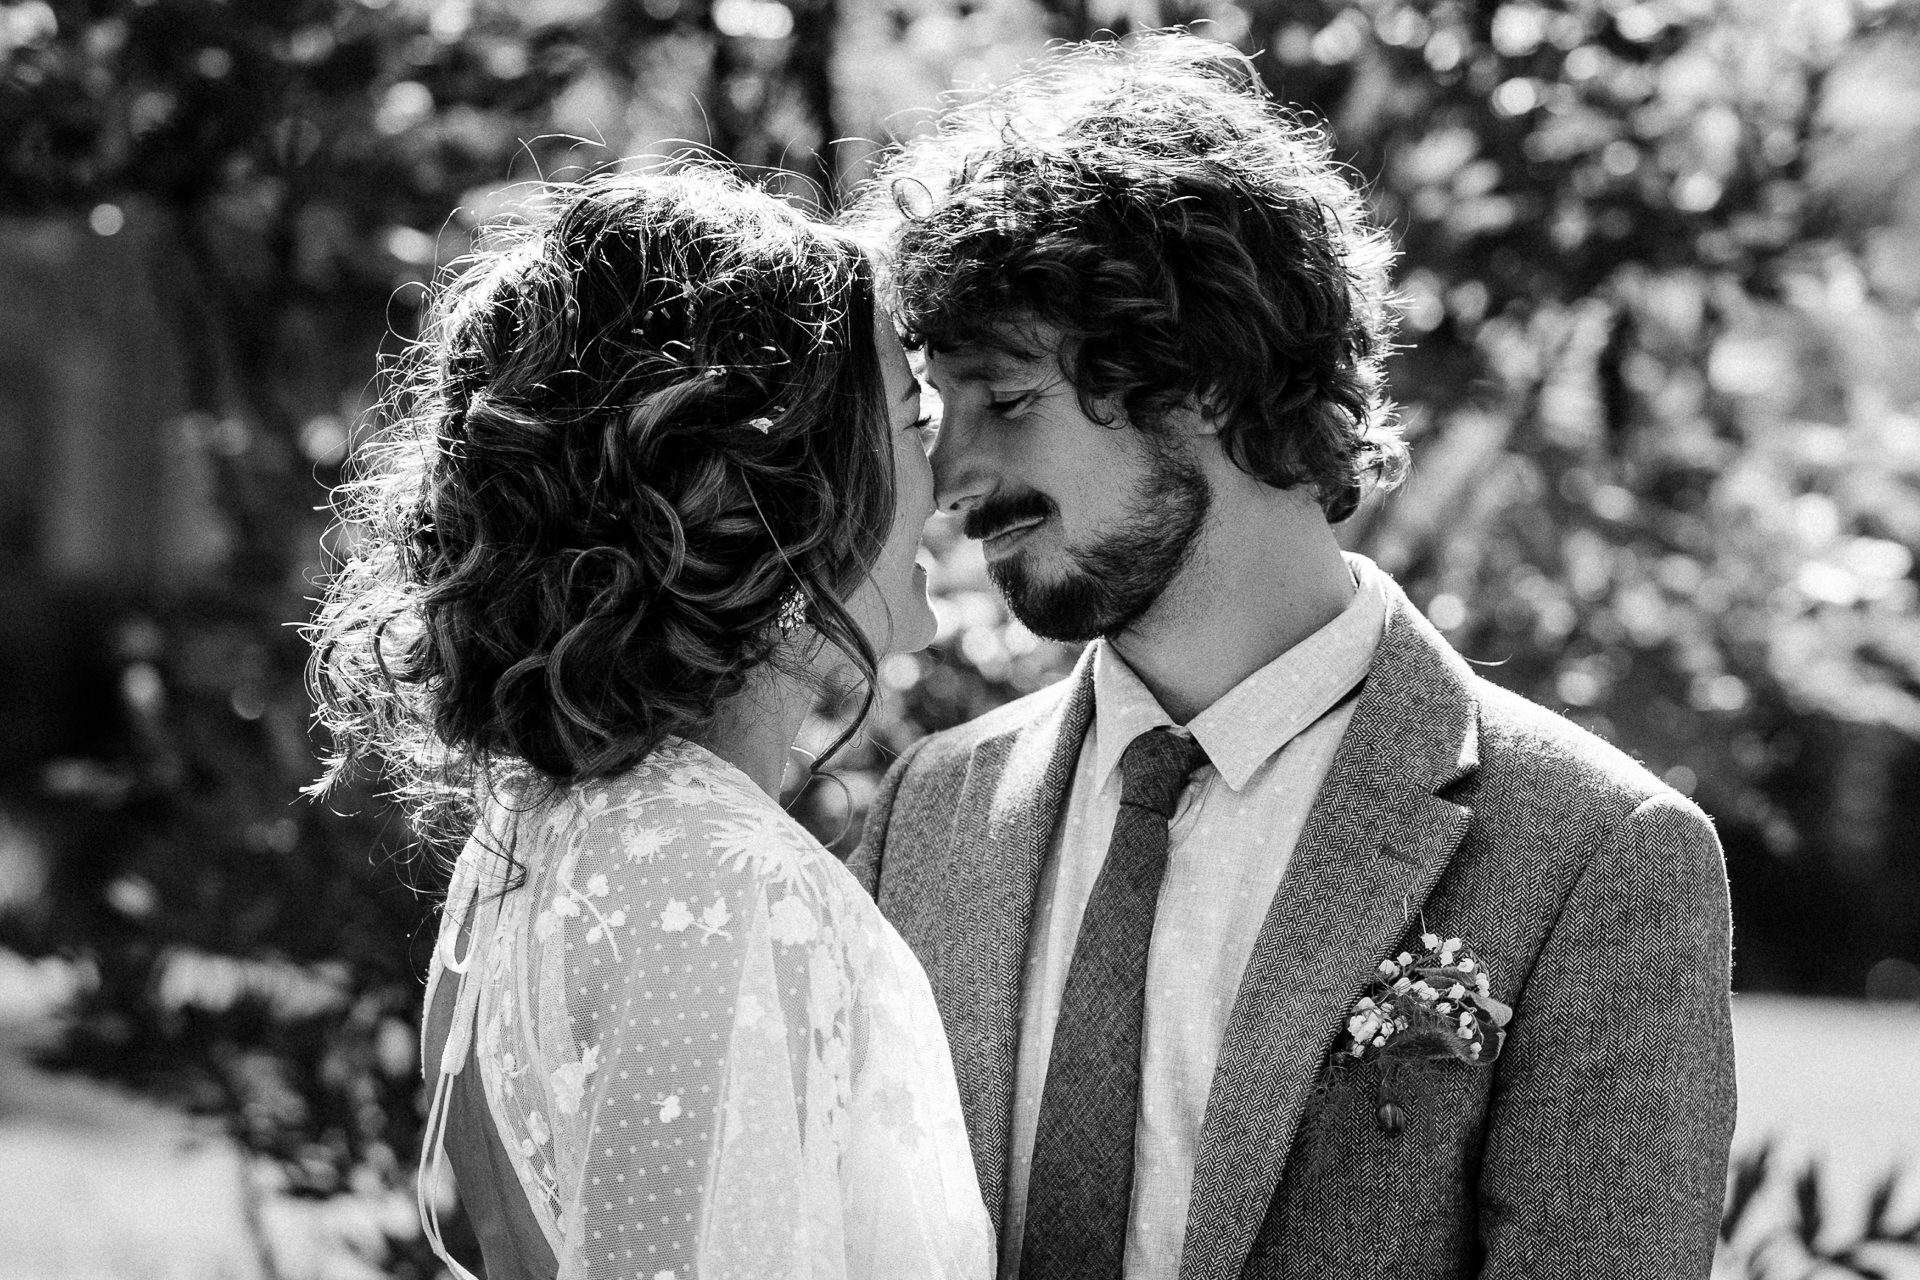 0045-DEVON-SOMERSET-WEDDING-PHOTOGRAPHER-0174-BEST-OF-2019-LOUISE-MAY-DEVON-SOMERSET-WEDDING-PHOTOGRAPHY-LM1_1489